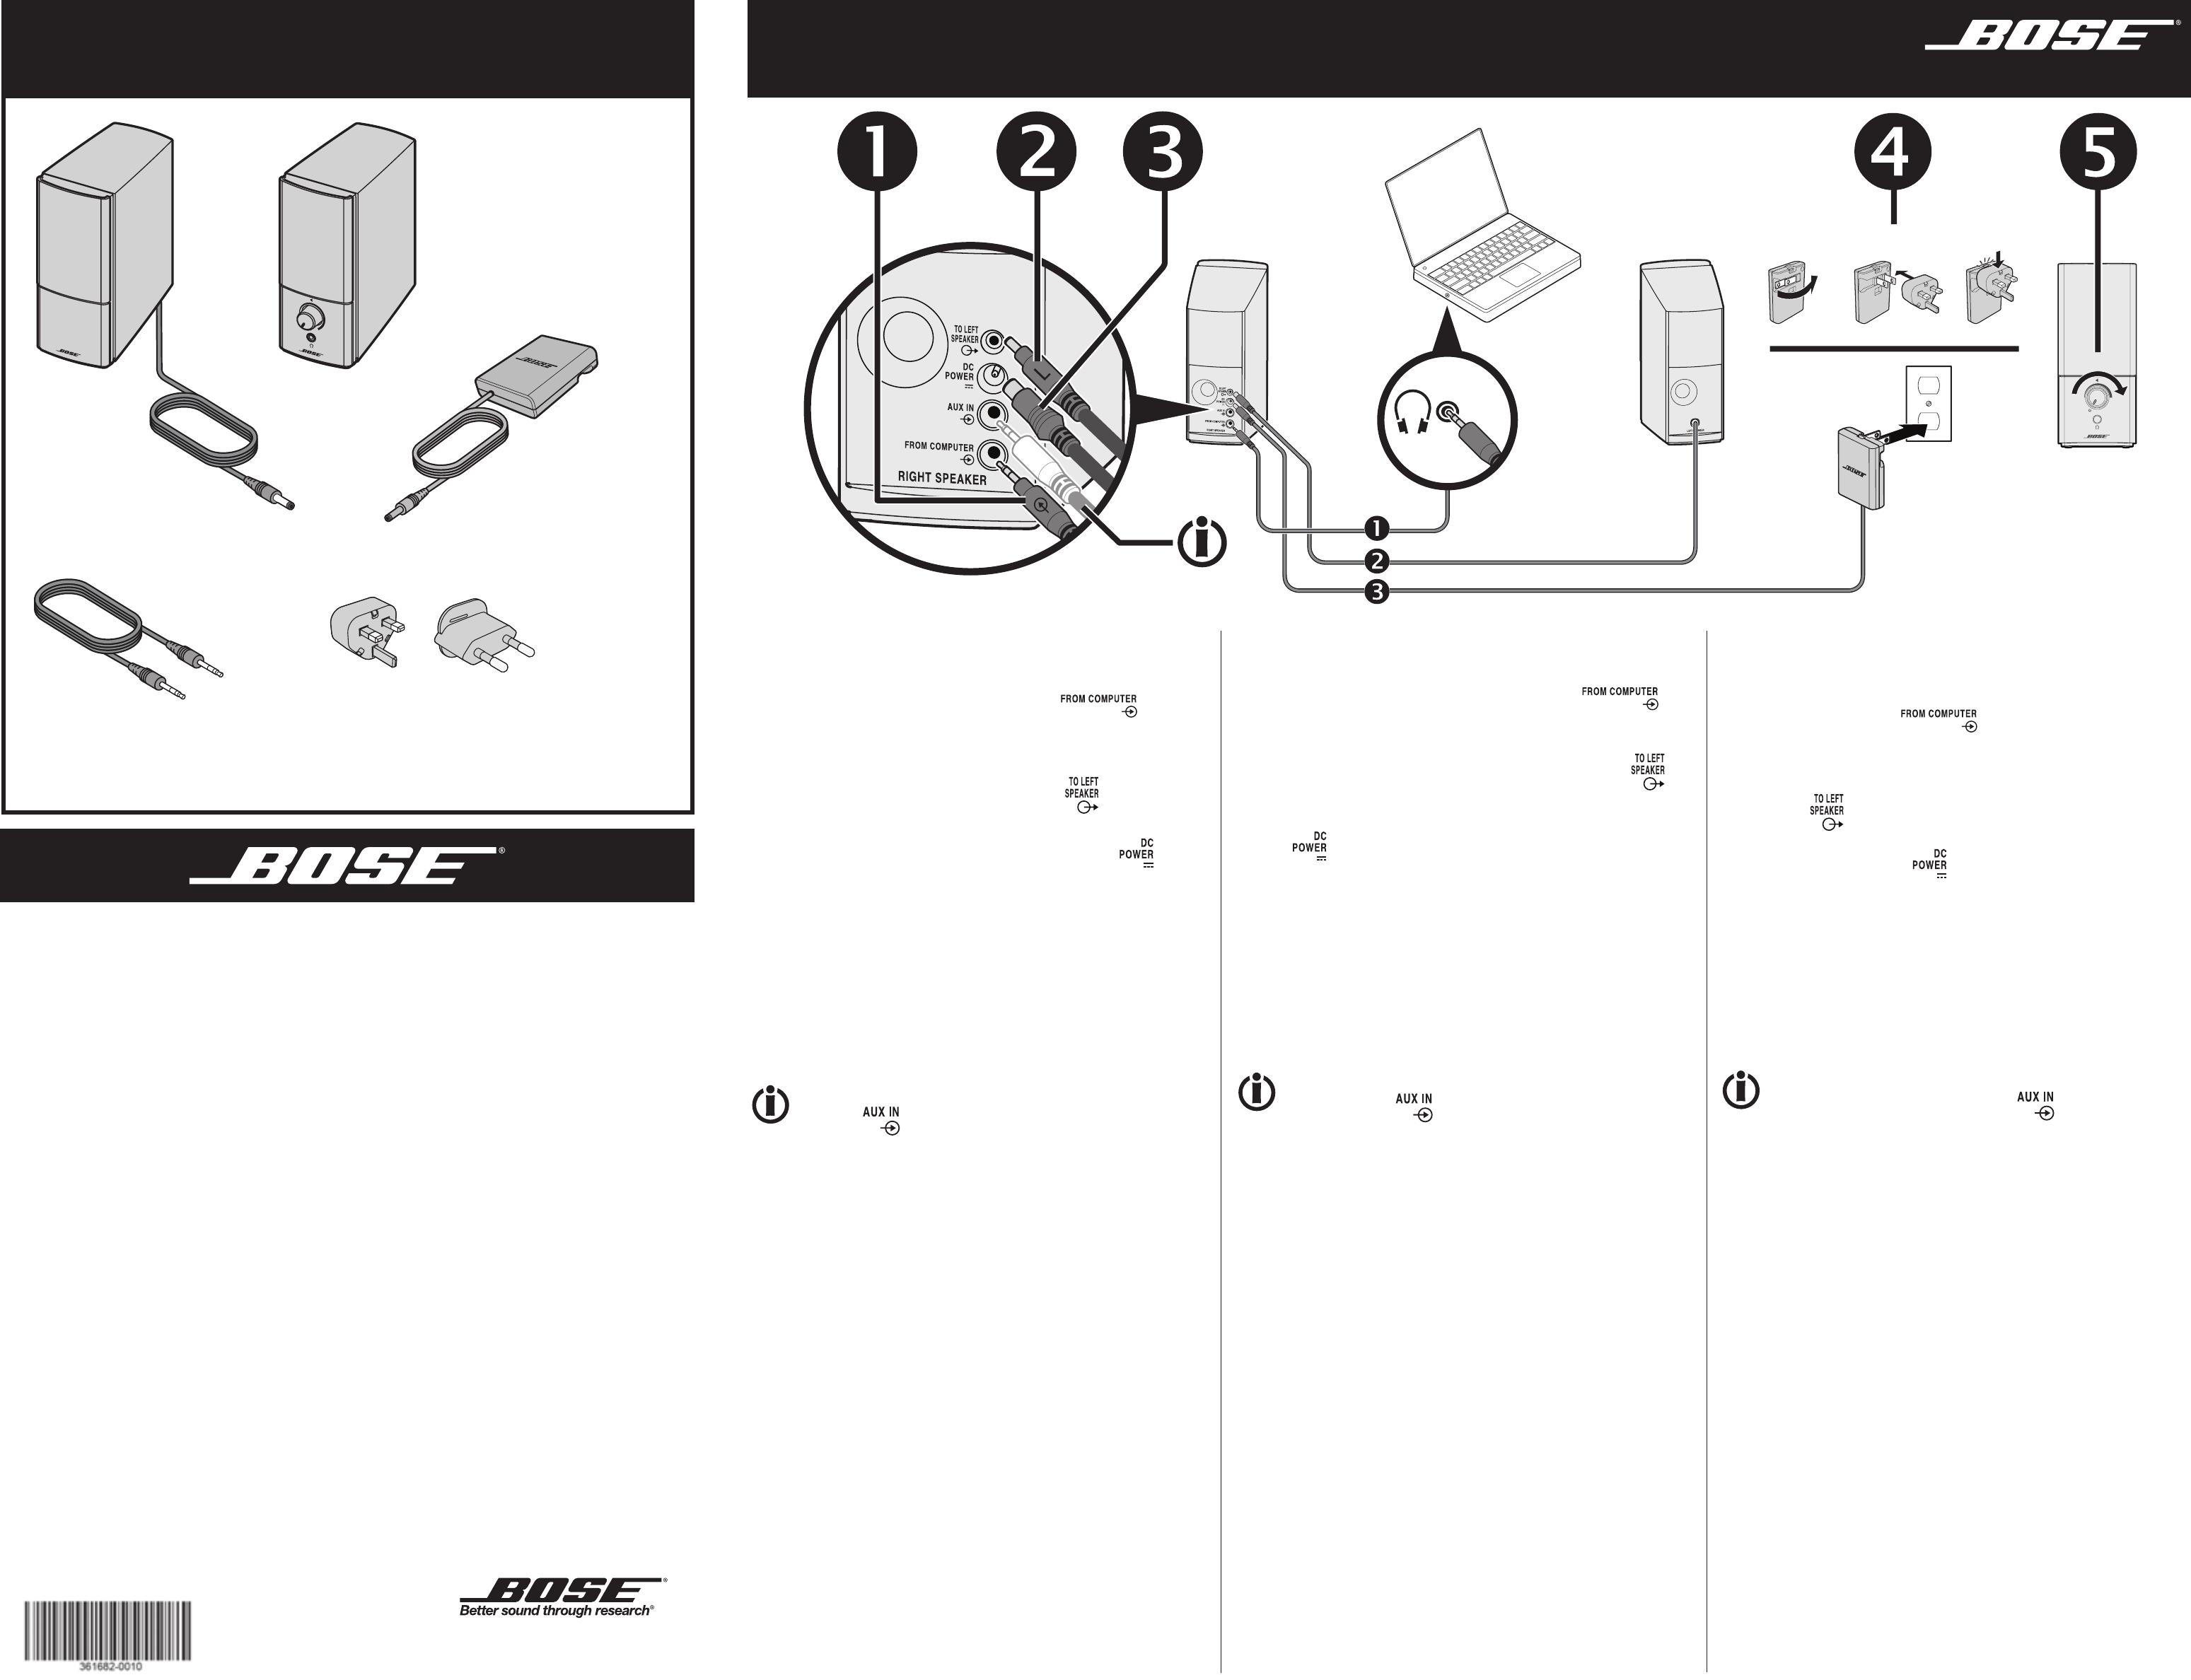 User manual Bose Companion 2 Series III (2 pages)Manua.ls